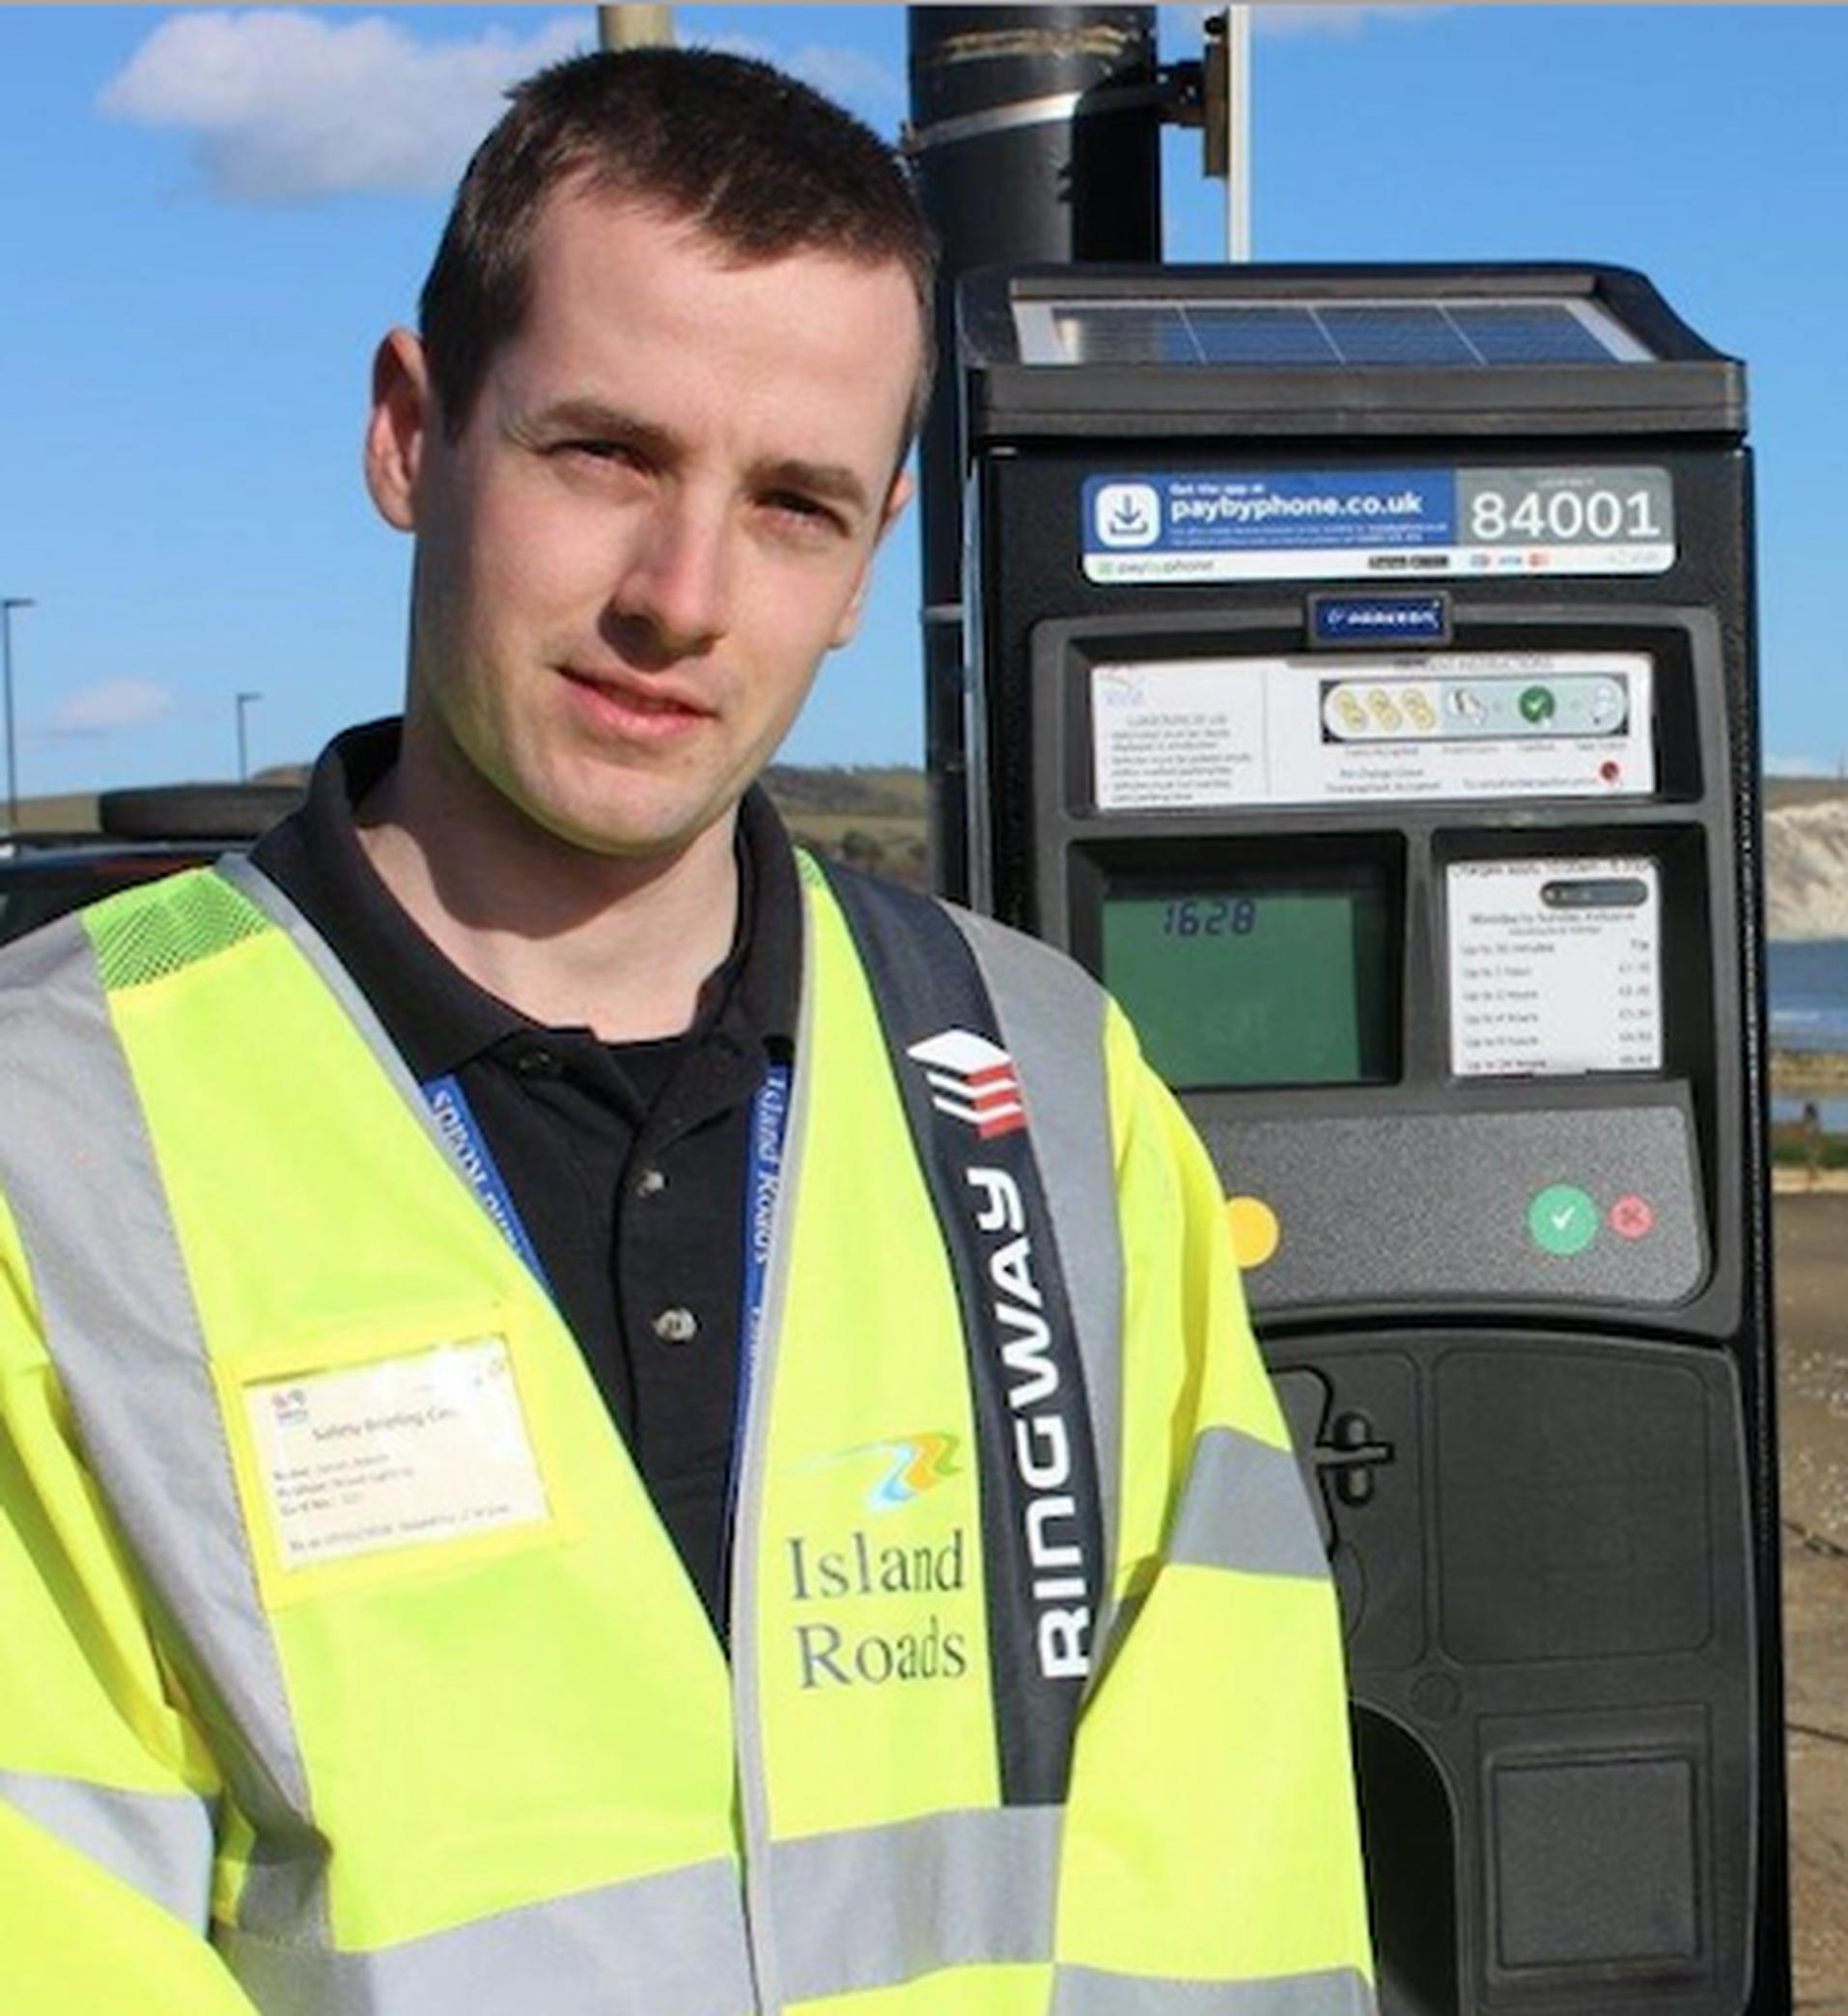 James Adsett of Island Roads with one of the new Flowbird terminals